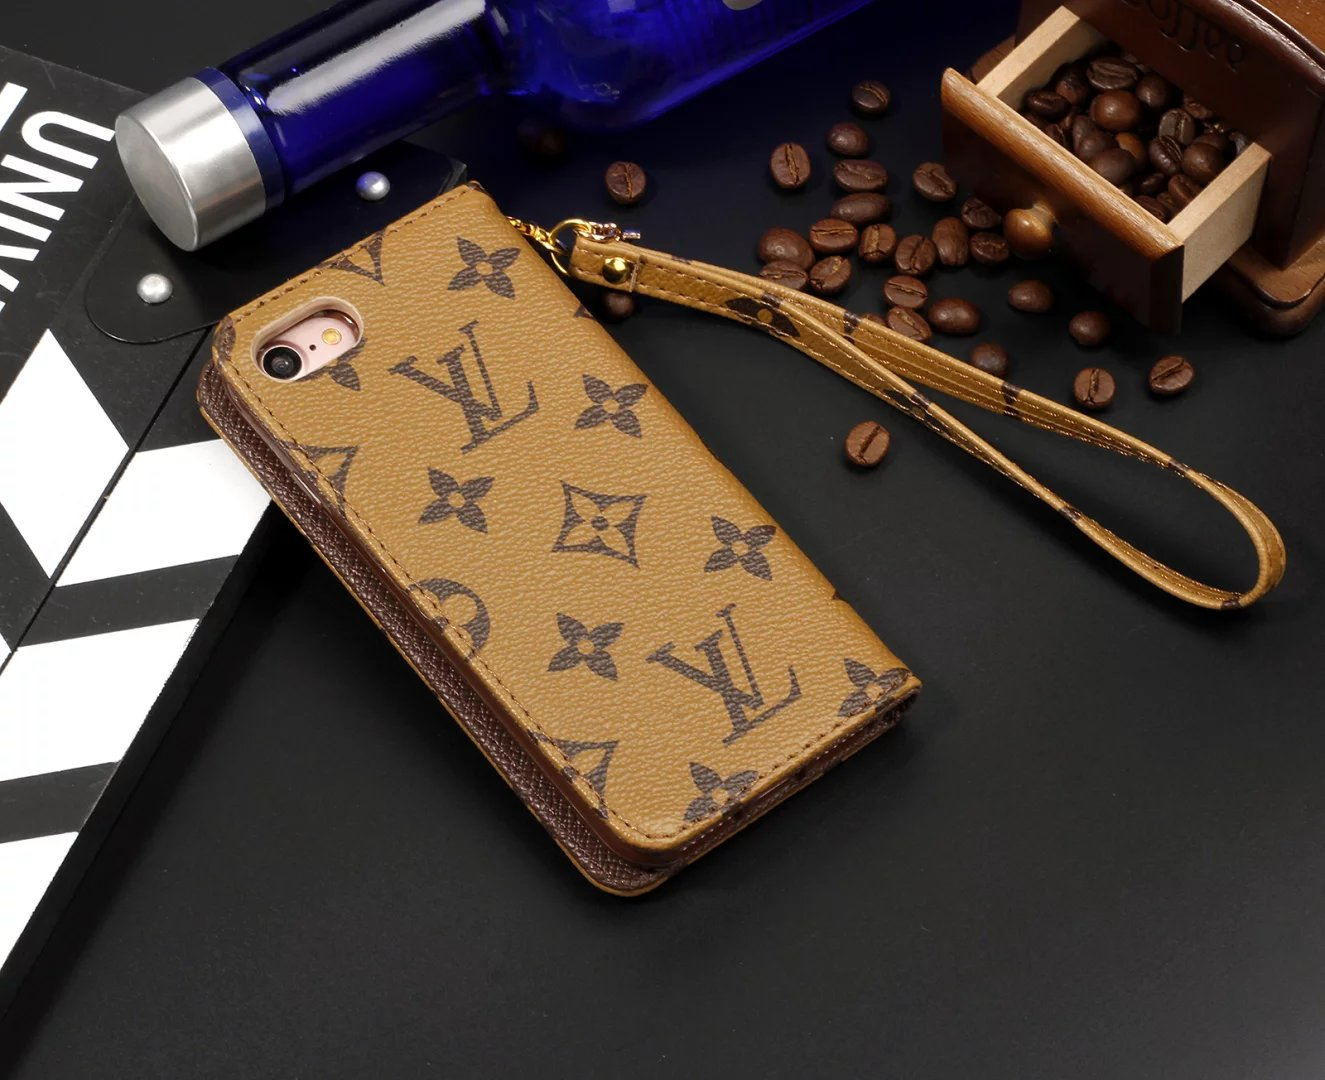 designer iphone hüllen iphone hülle mit foto Louis Vuitton iphone7 Plus hülle dünne iphone hülle iphone 7 Plus was7rdichte hülle maße iphone iphone 7 Plus handyschale 7lbstgemachte iphone hülle iphone 7 Plus hüllen günstig